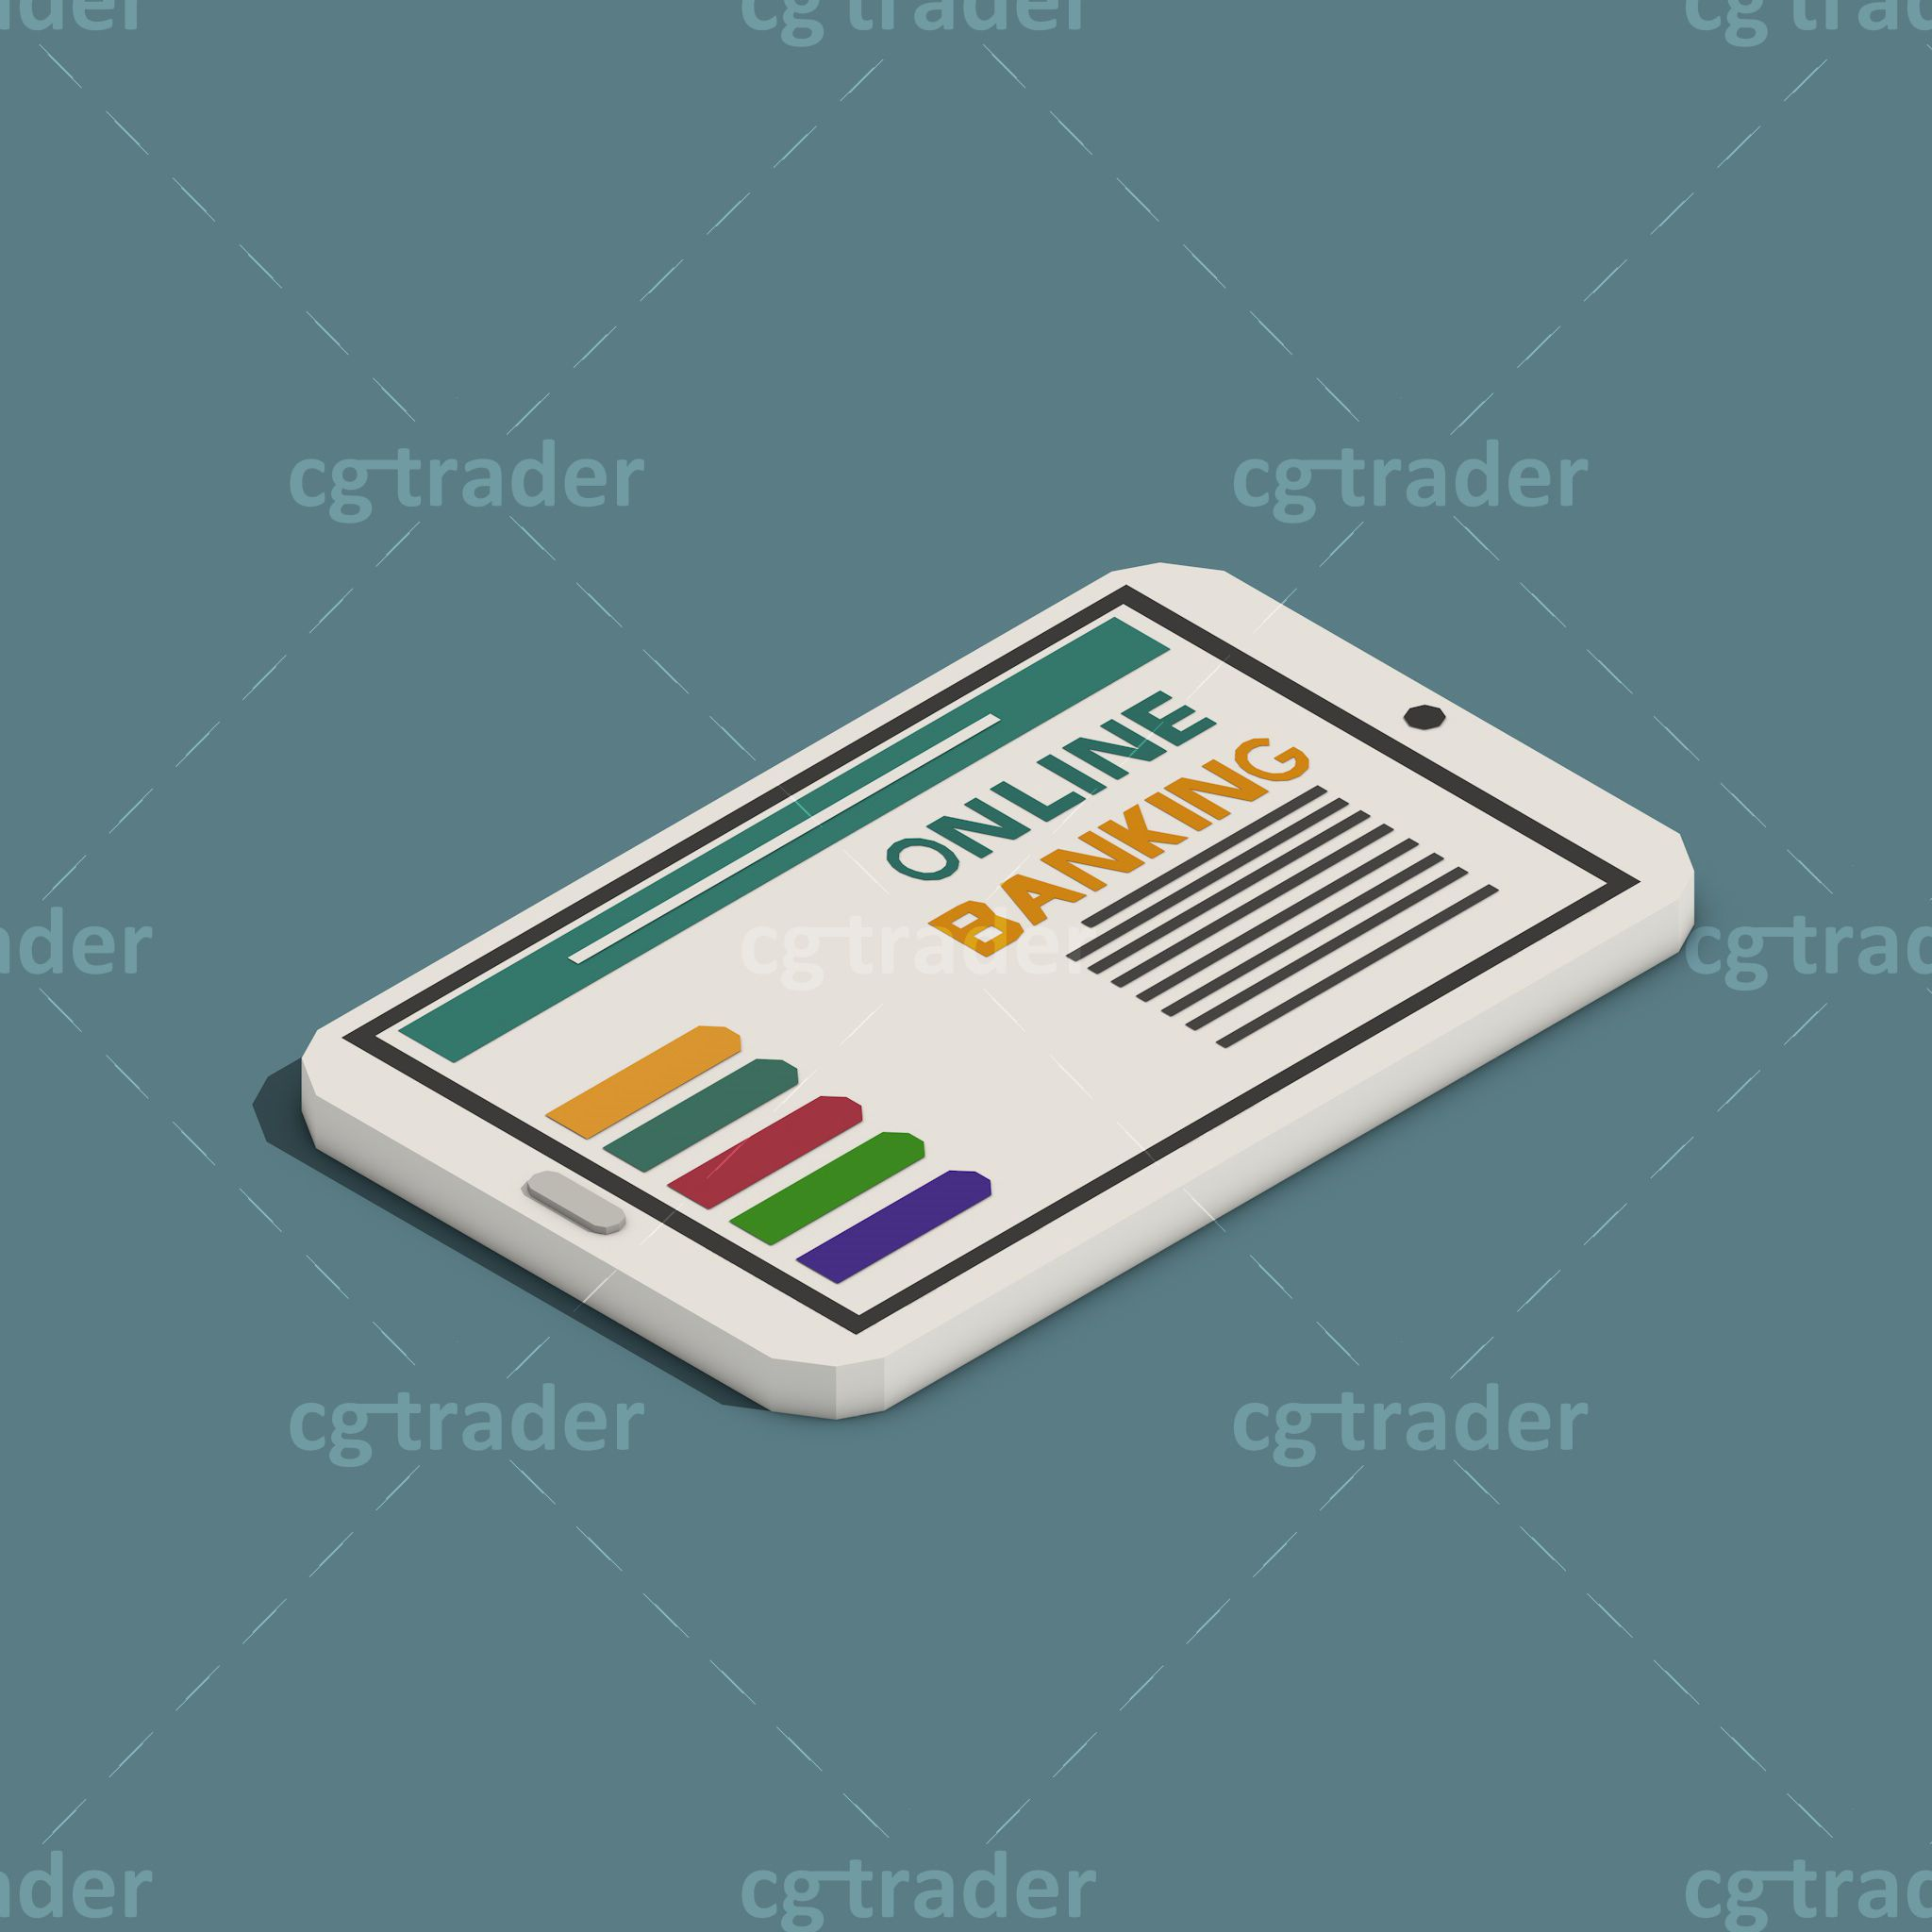 Low Poly Tablet Payment Methods Isometric 3d Asset Cgtrader